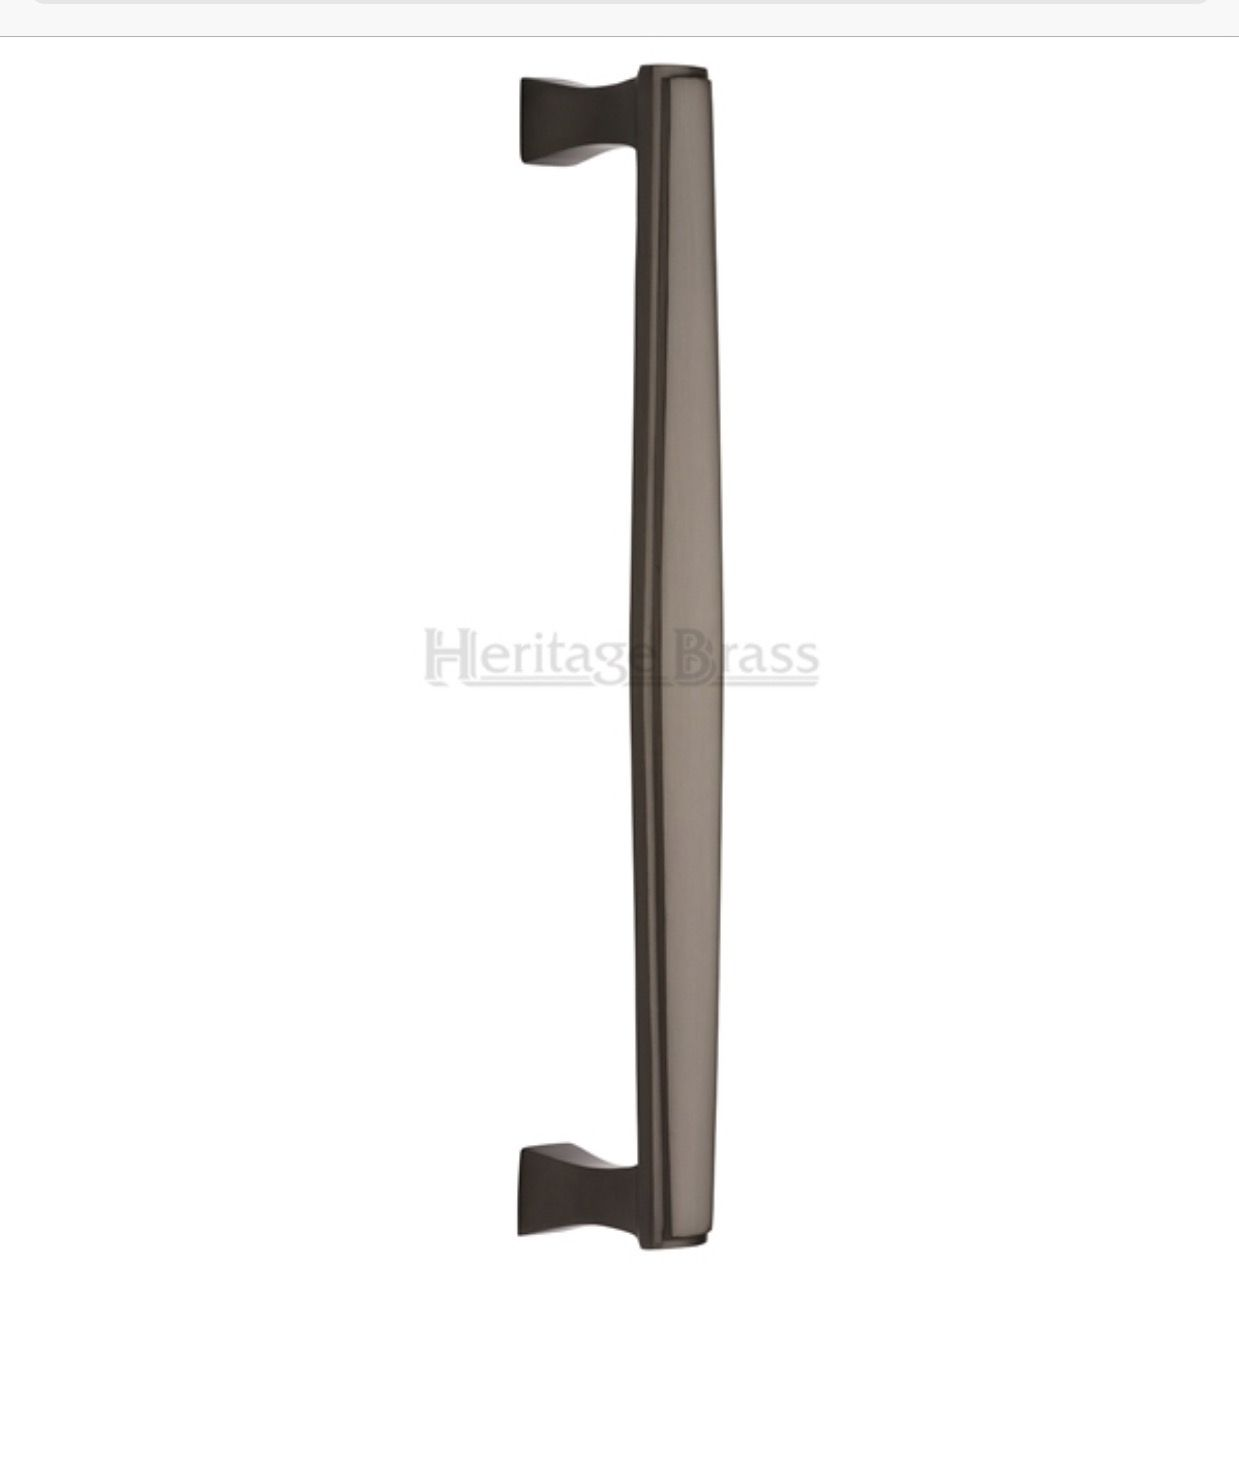 Deco Pull Door Handle Dimensions Two Sizes Available Length